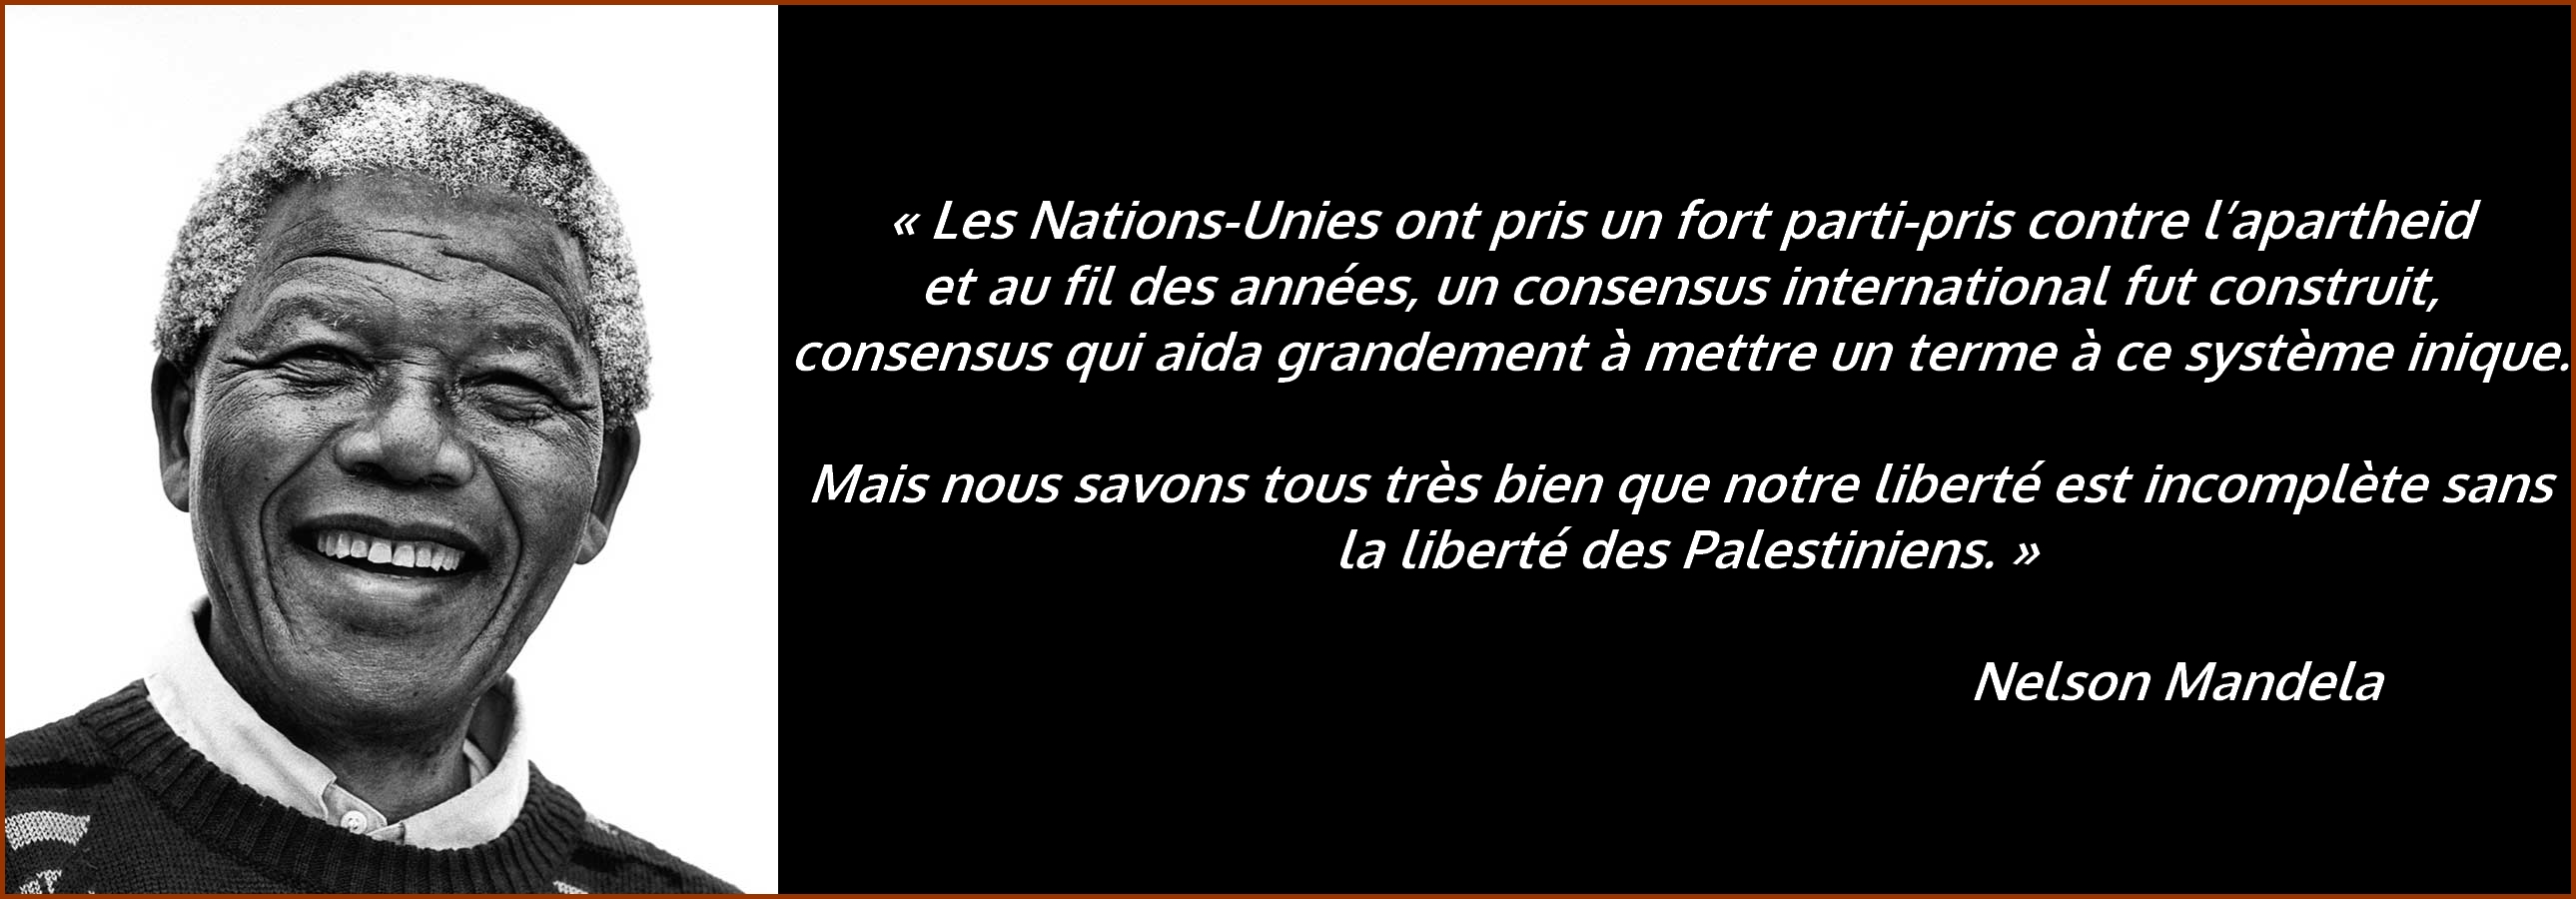 Nelson Mandela : citation sur la Palestine